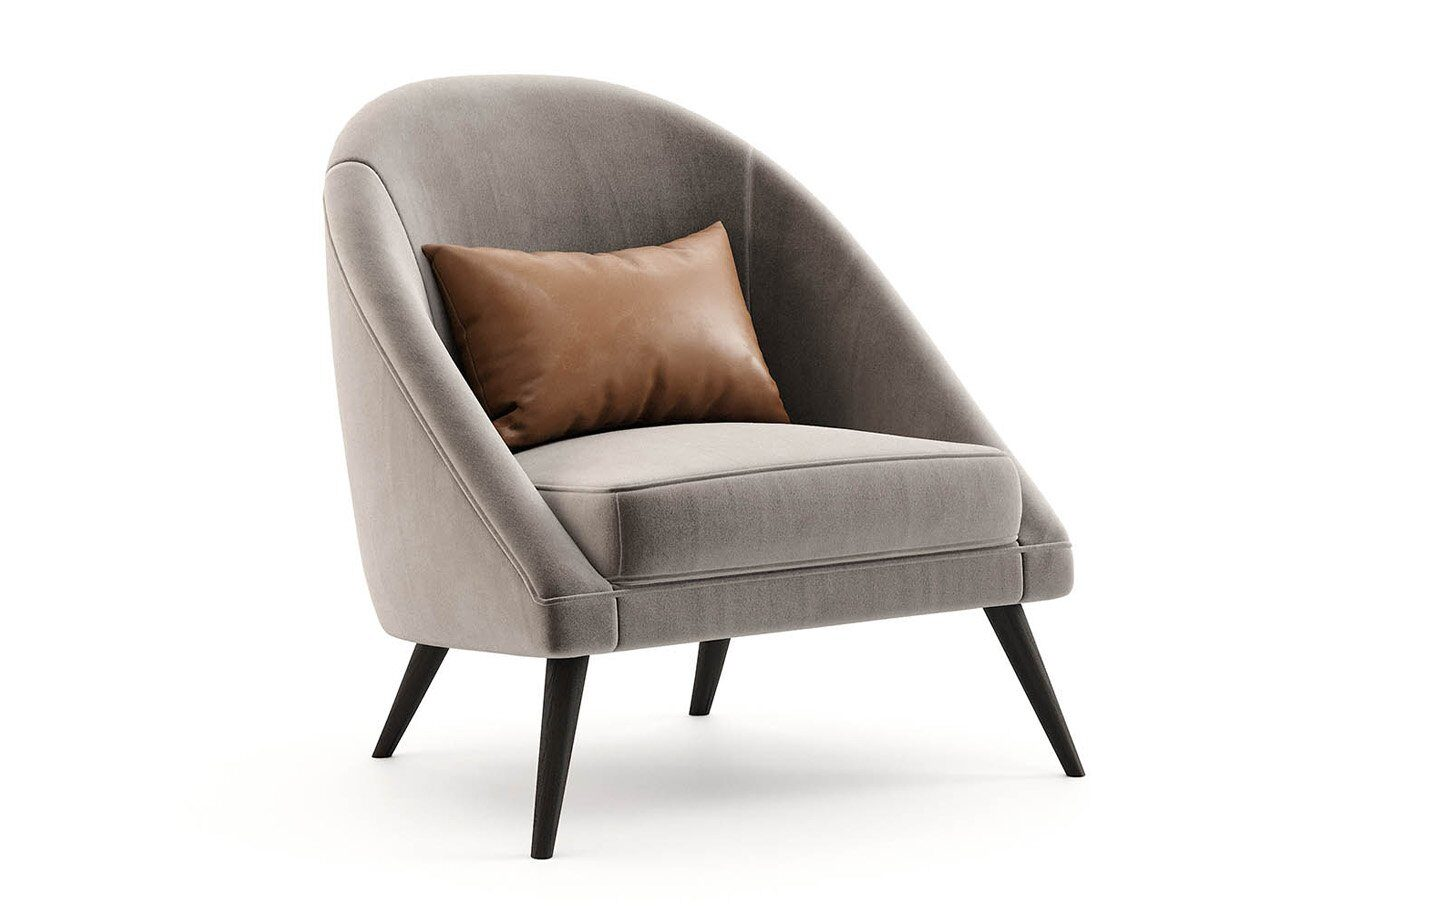 Poesie-Chair-Furniture-Collection-by-fabiia-01